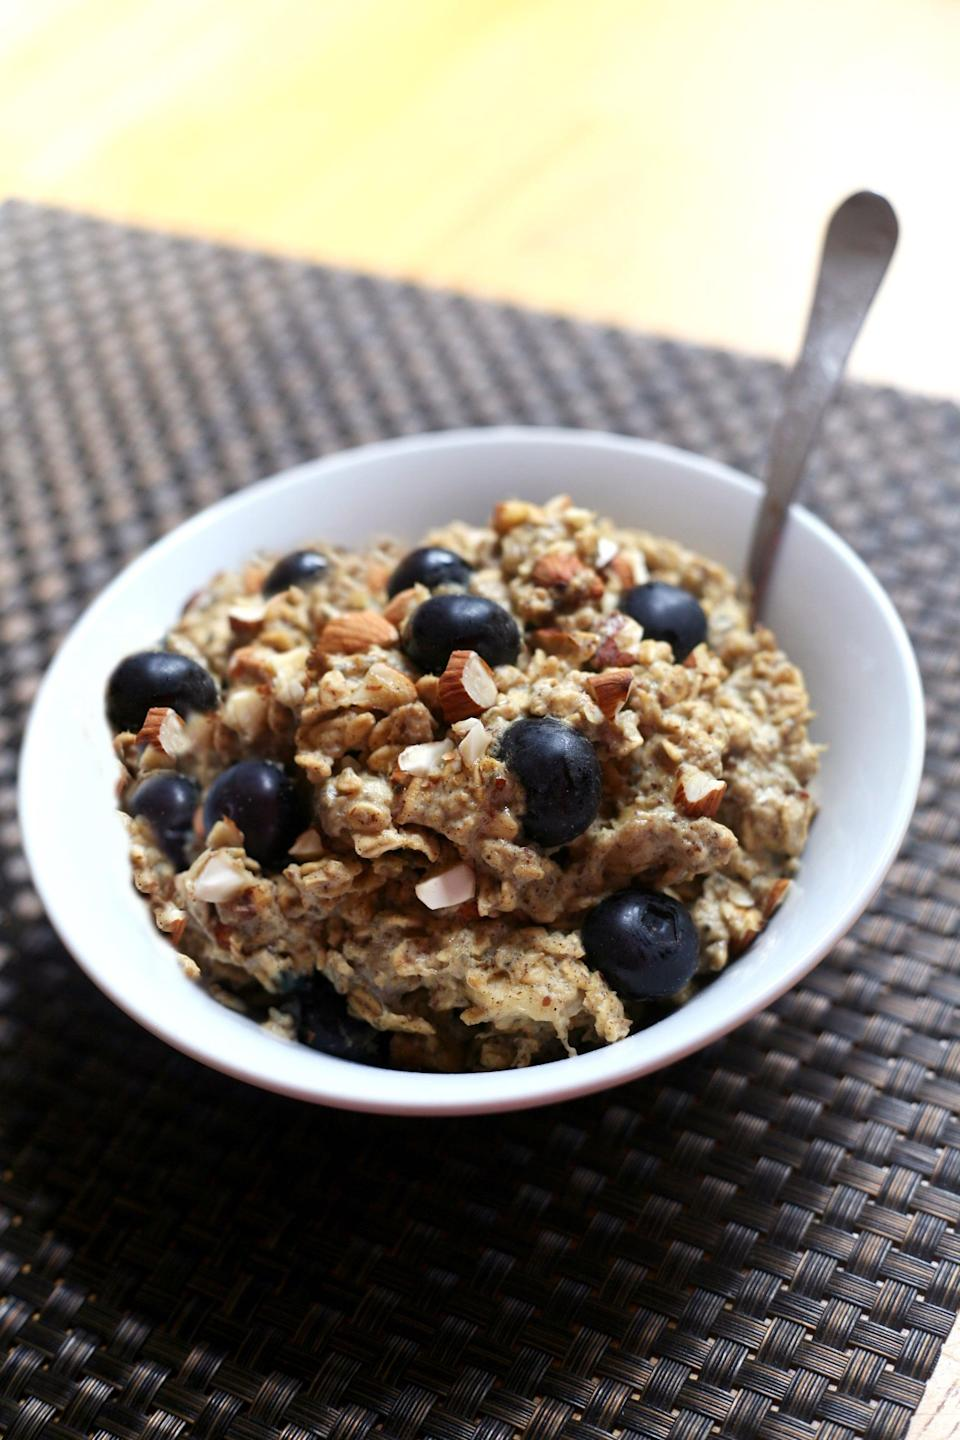 "<p>Sweetened only with banana, applesauce, and blueberries, this baked gluten-free breakfast offers hunger-satiating protein and fiber. You'll get six servings out of this recipe. </p> <p><strong>Calories:</strong> 321<br> <strong>Protein:</strong> 15.9 grams </p> <p><strong>Get the recipe:</strong> <a href=""https://www.popsugar.com/fitness/Healthy-Baked-Oatmeal-43529404"" class=""link rapid-noclick-resp"" rel=""nofollow noopener"" target=""_blank"" data-ylk=""slk:blueberry banana baked oatmeal"">blueberry banana baked oatmeal</a></p>"